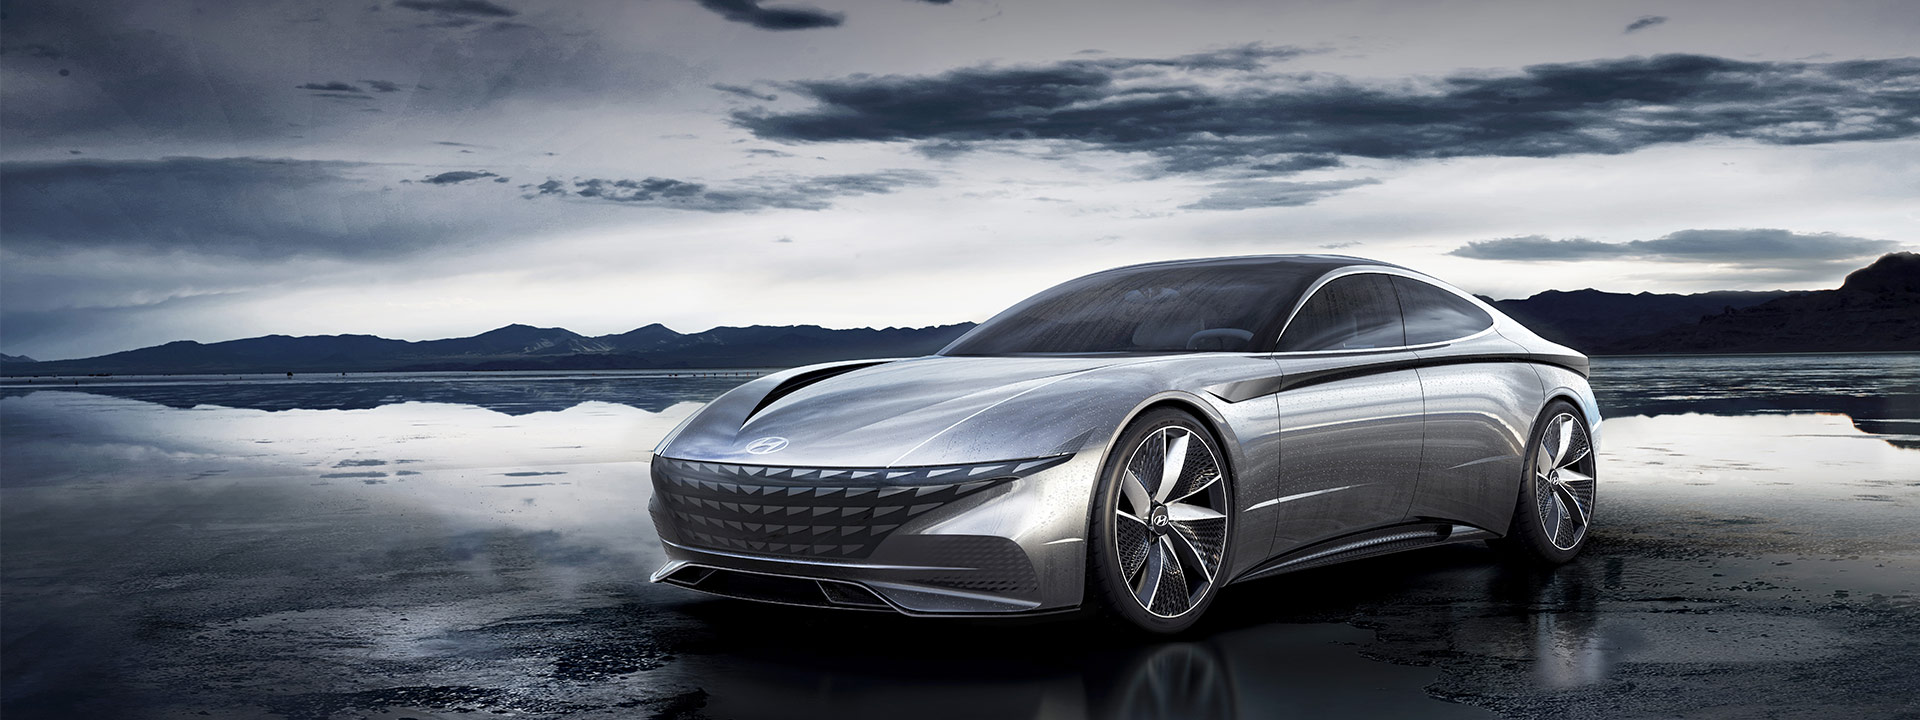 Hyundai Presents Future Design Direction At Geneva Motor Show